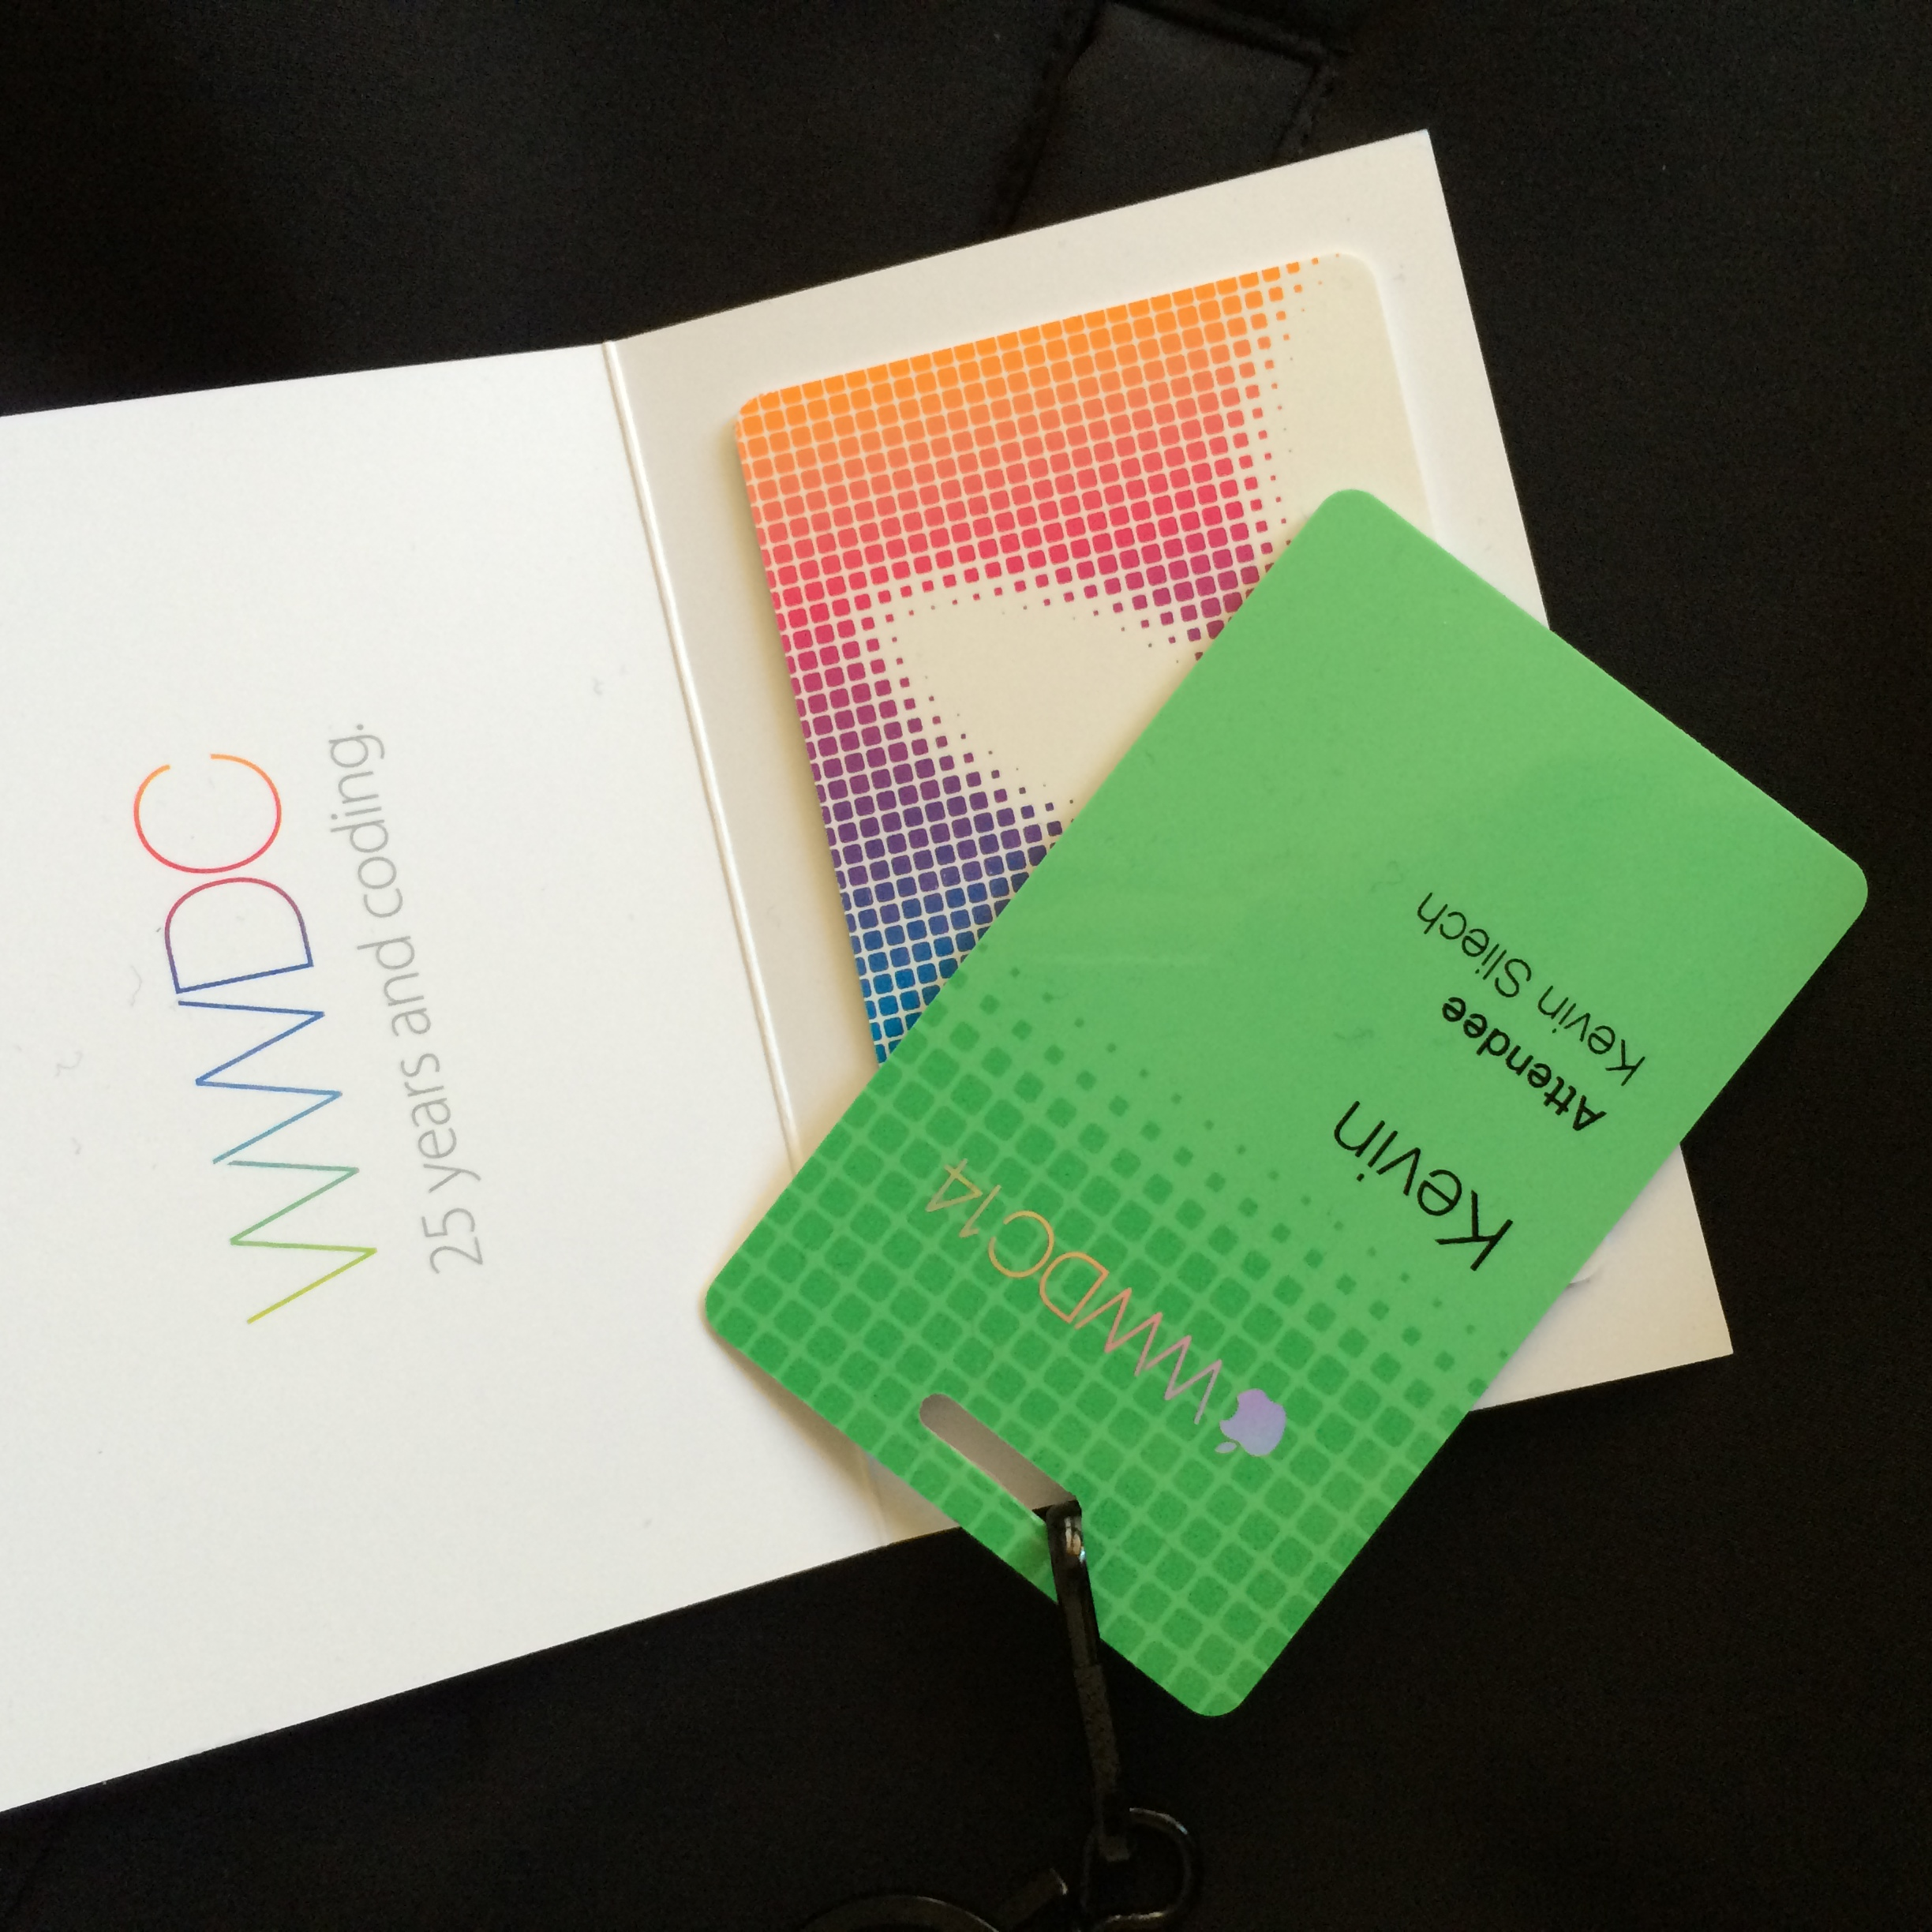 WWDC badge and extremely generous $25 iTunes gift certificate (K. Sliech, iPhone 5S)